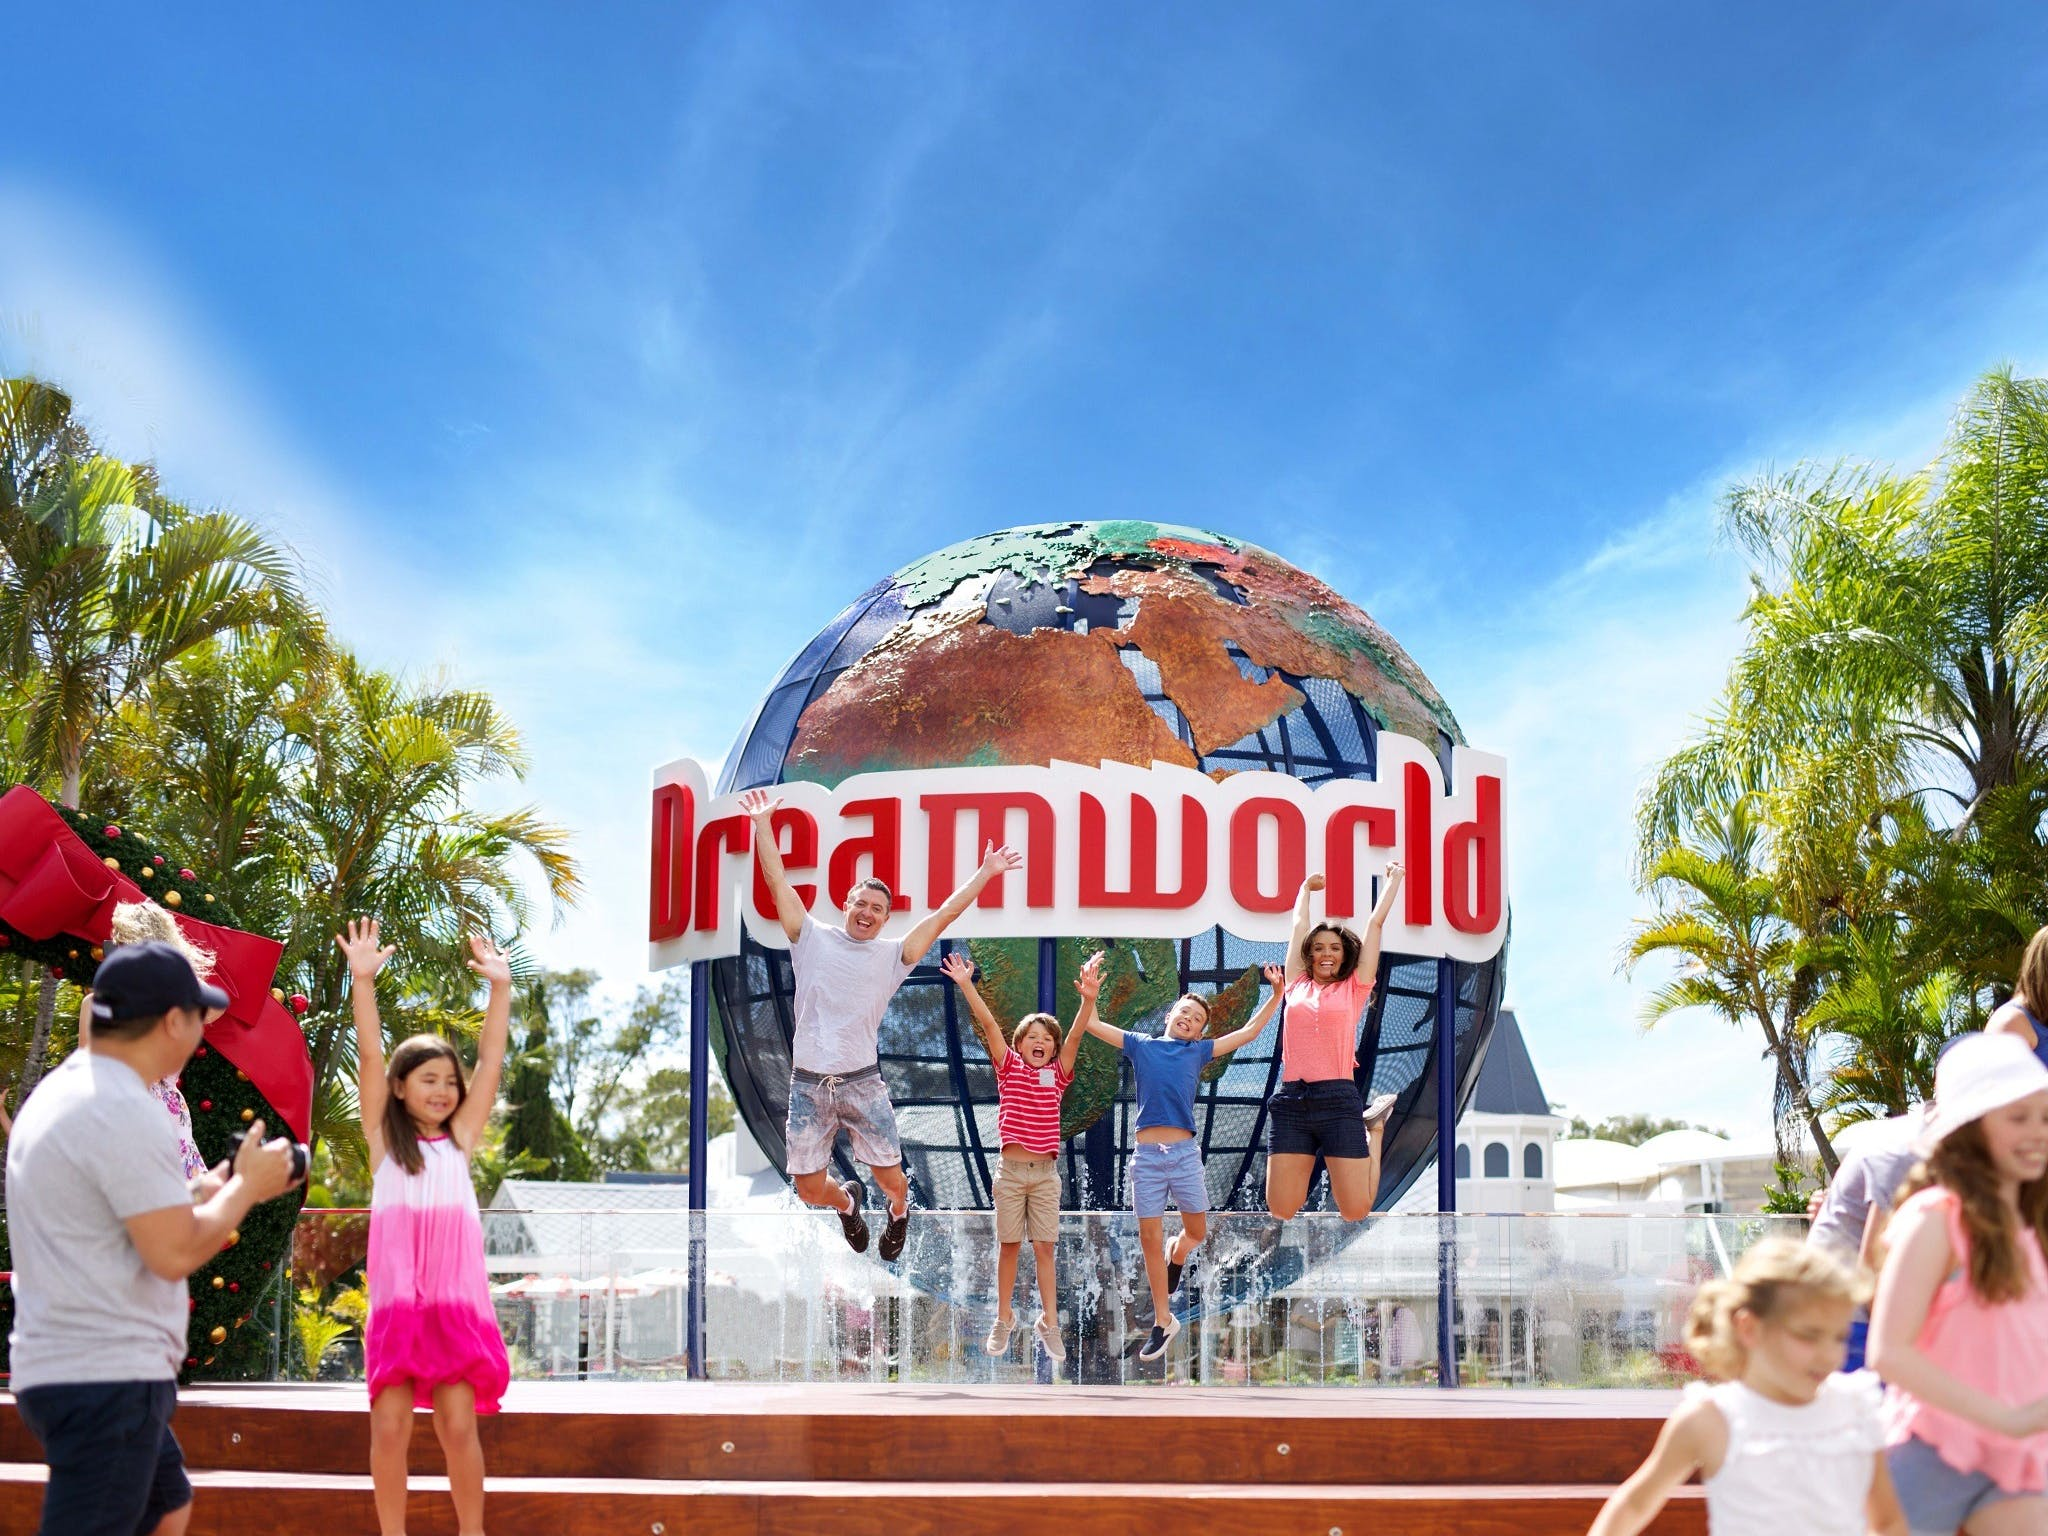 Family jumping for joy in front of Dreamworld theme park sign